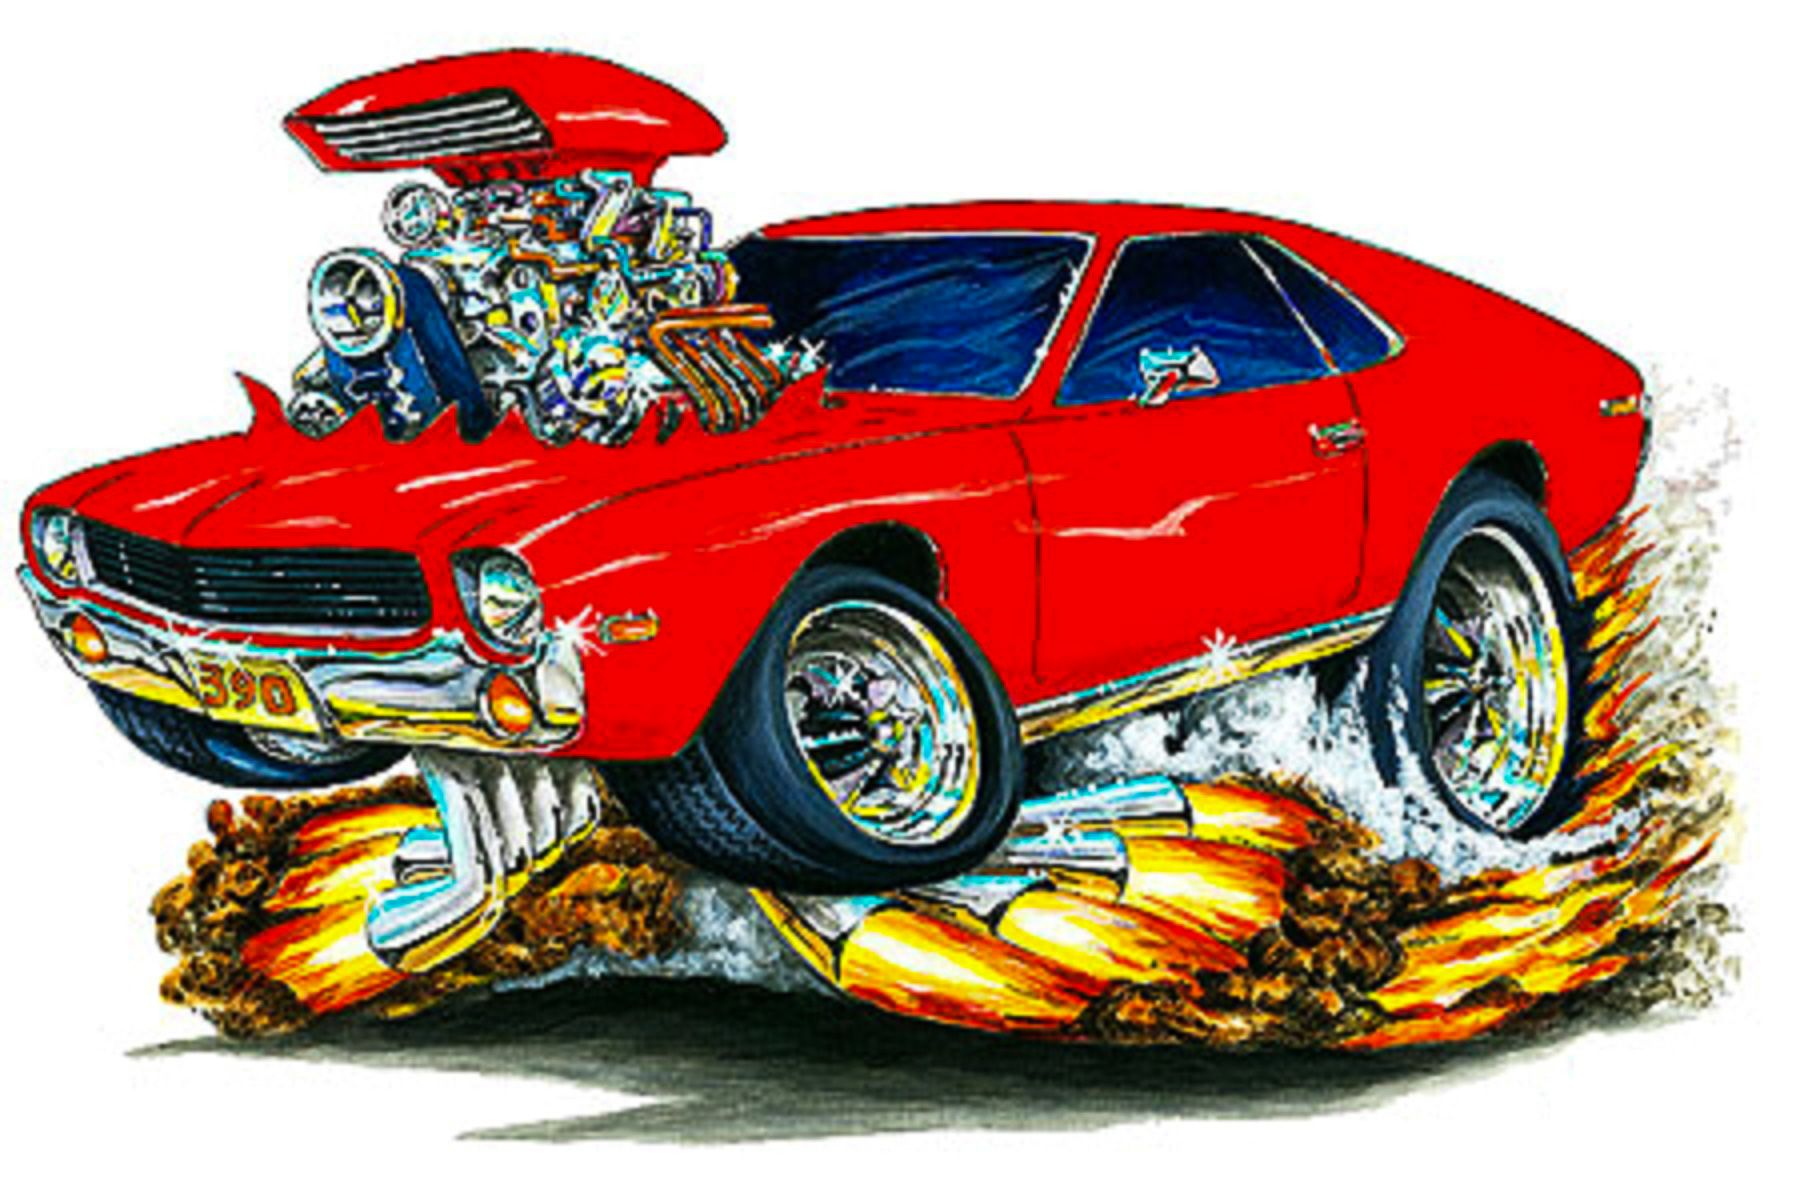 0f020d9ff825938a55a05e13670f7559 Interesting Info About Cartoon Car Engine with Amazing Images Cars Review